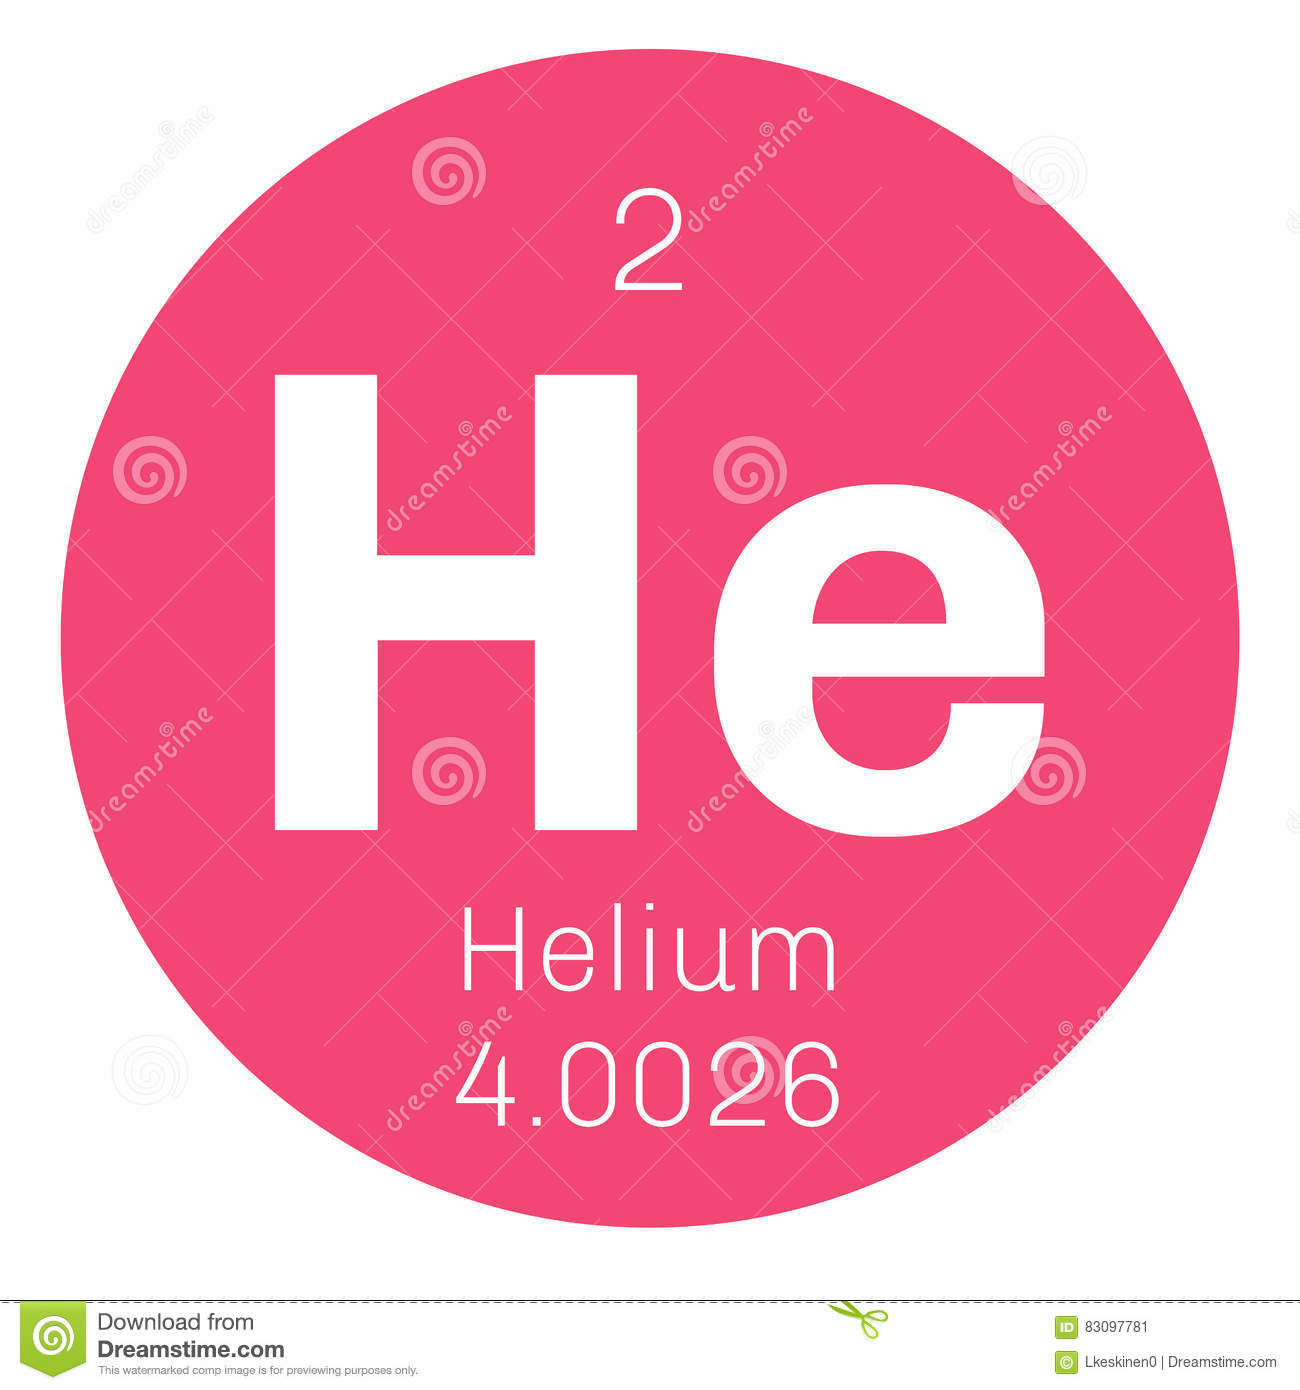 Helium Chemical Element Stock Vector Illustration Of Electron